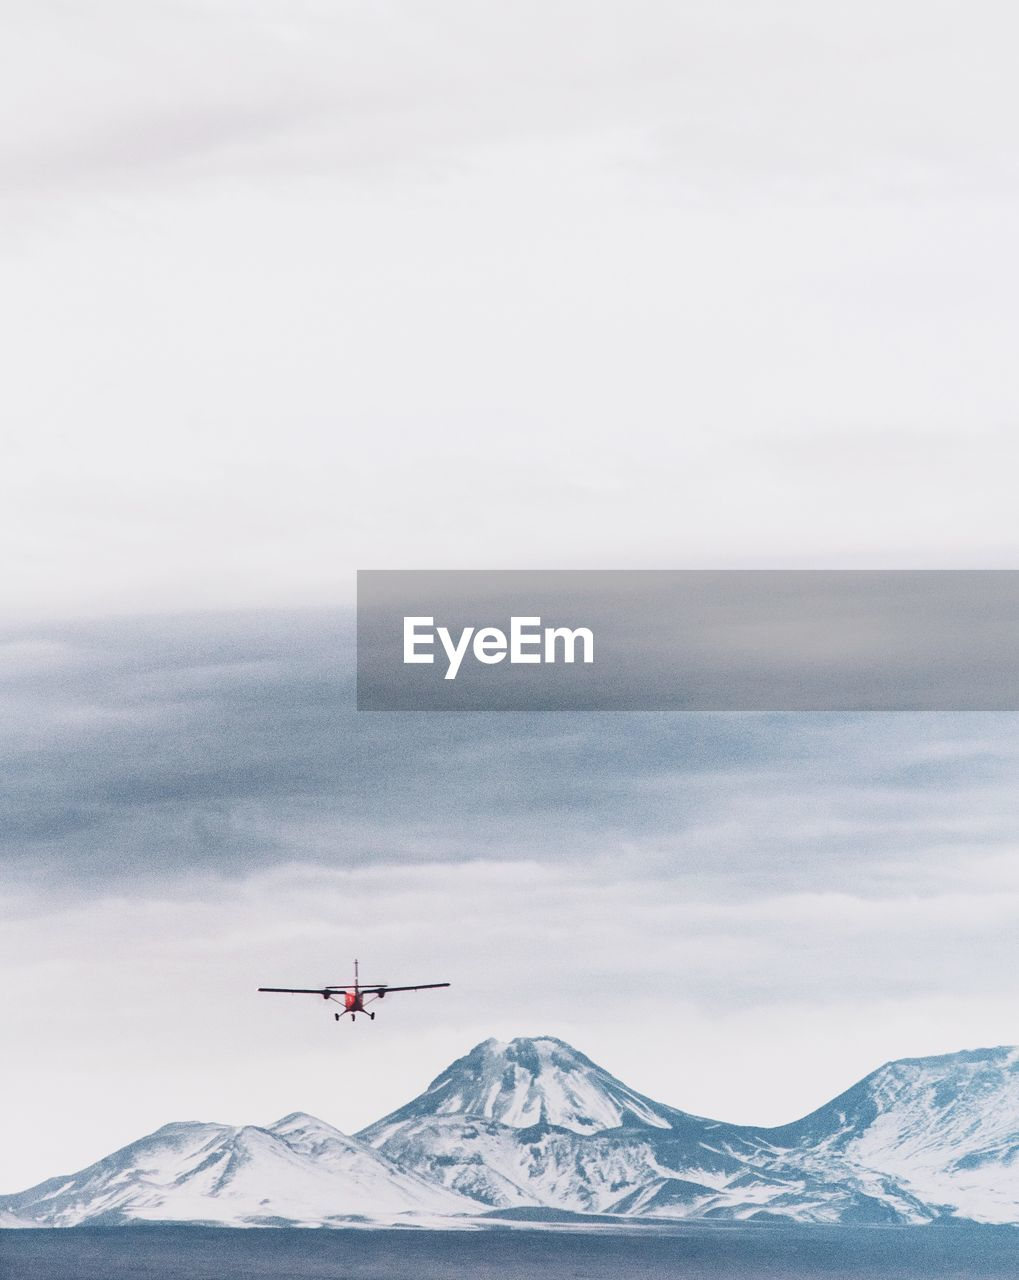 Helicopter flying over lake against snowcapped mountains